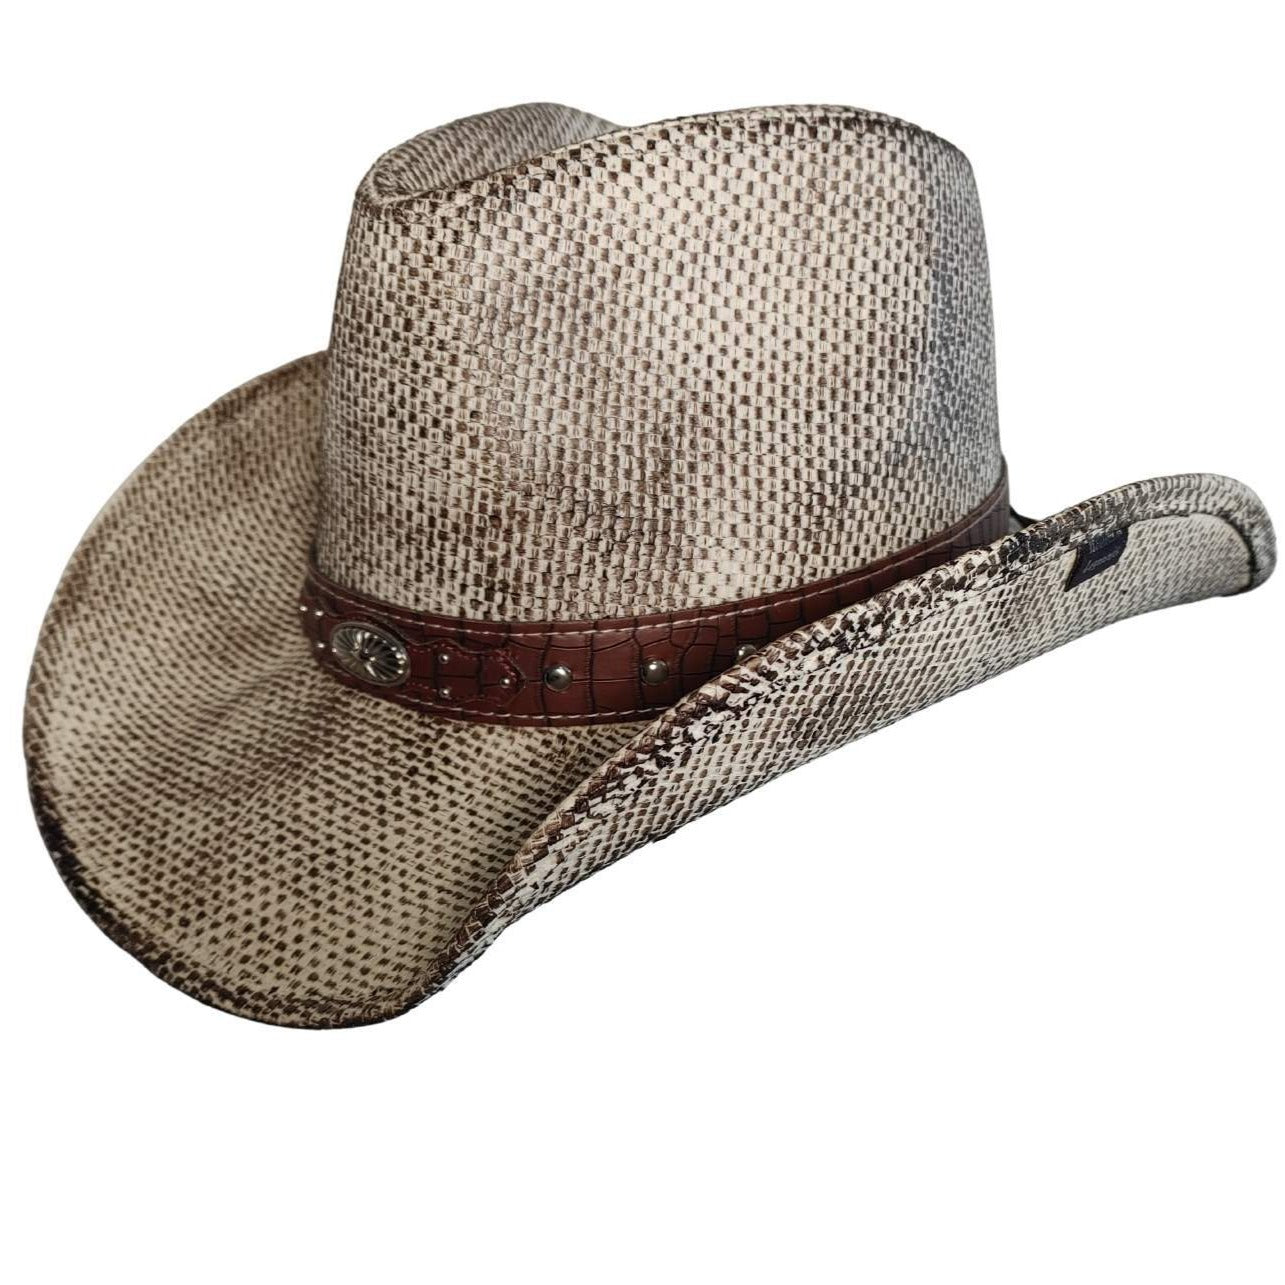 Redneck Legends Fake Snake Skin Leather Cowboy Hat